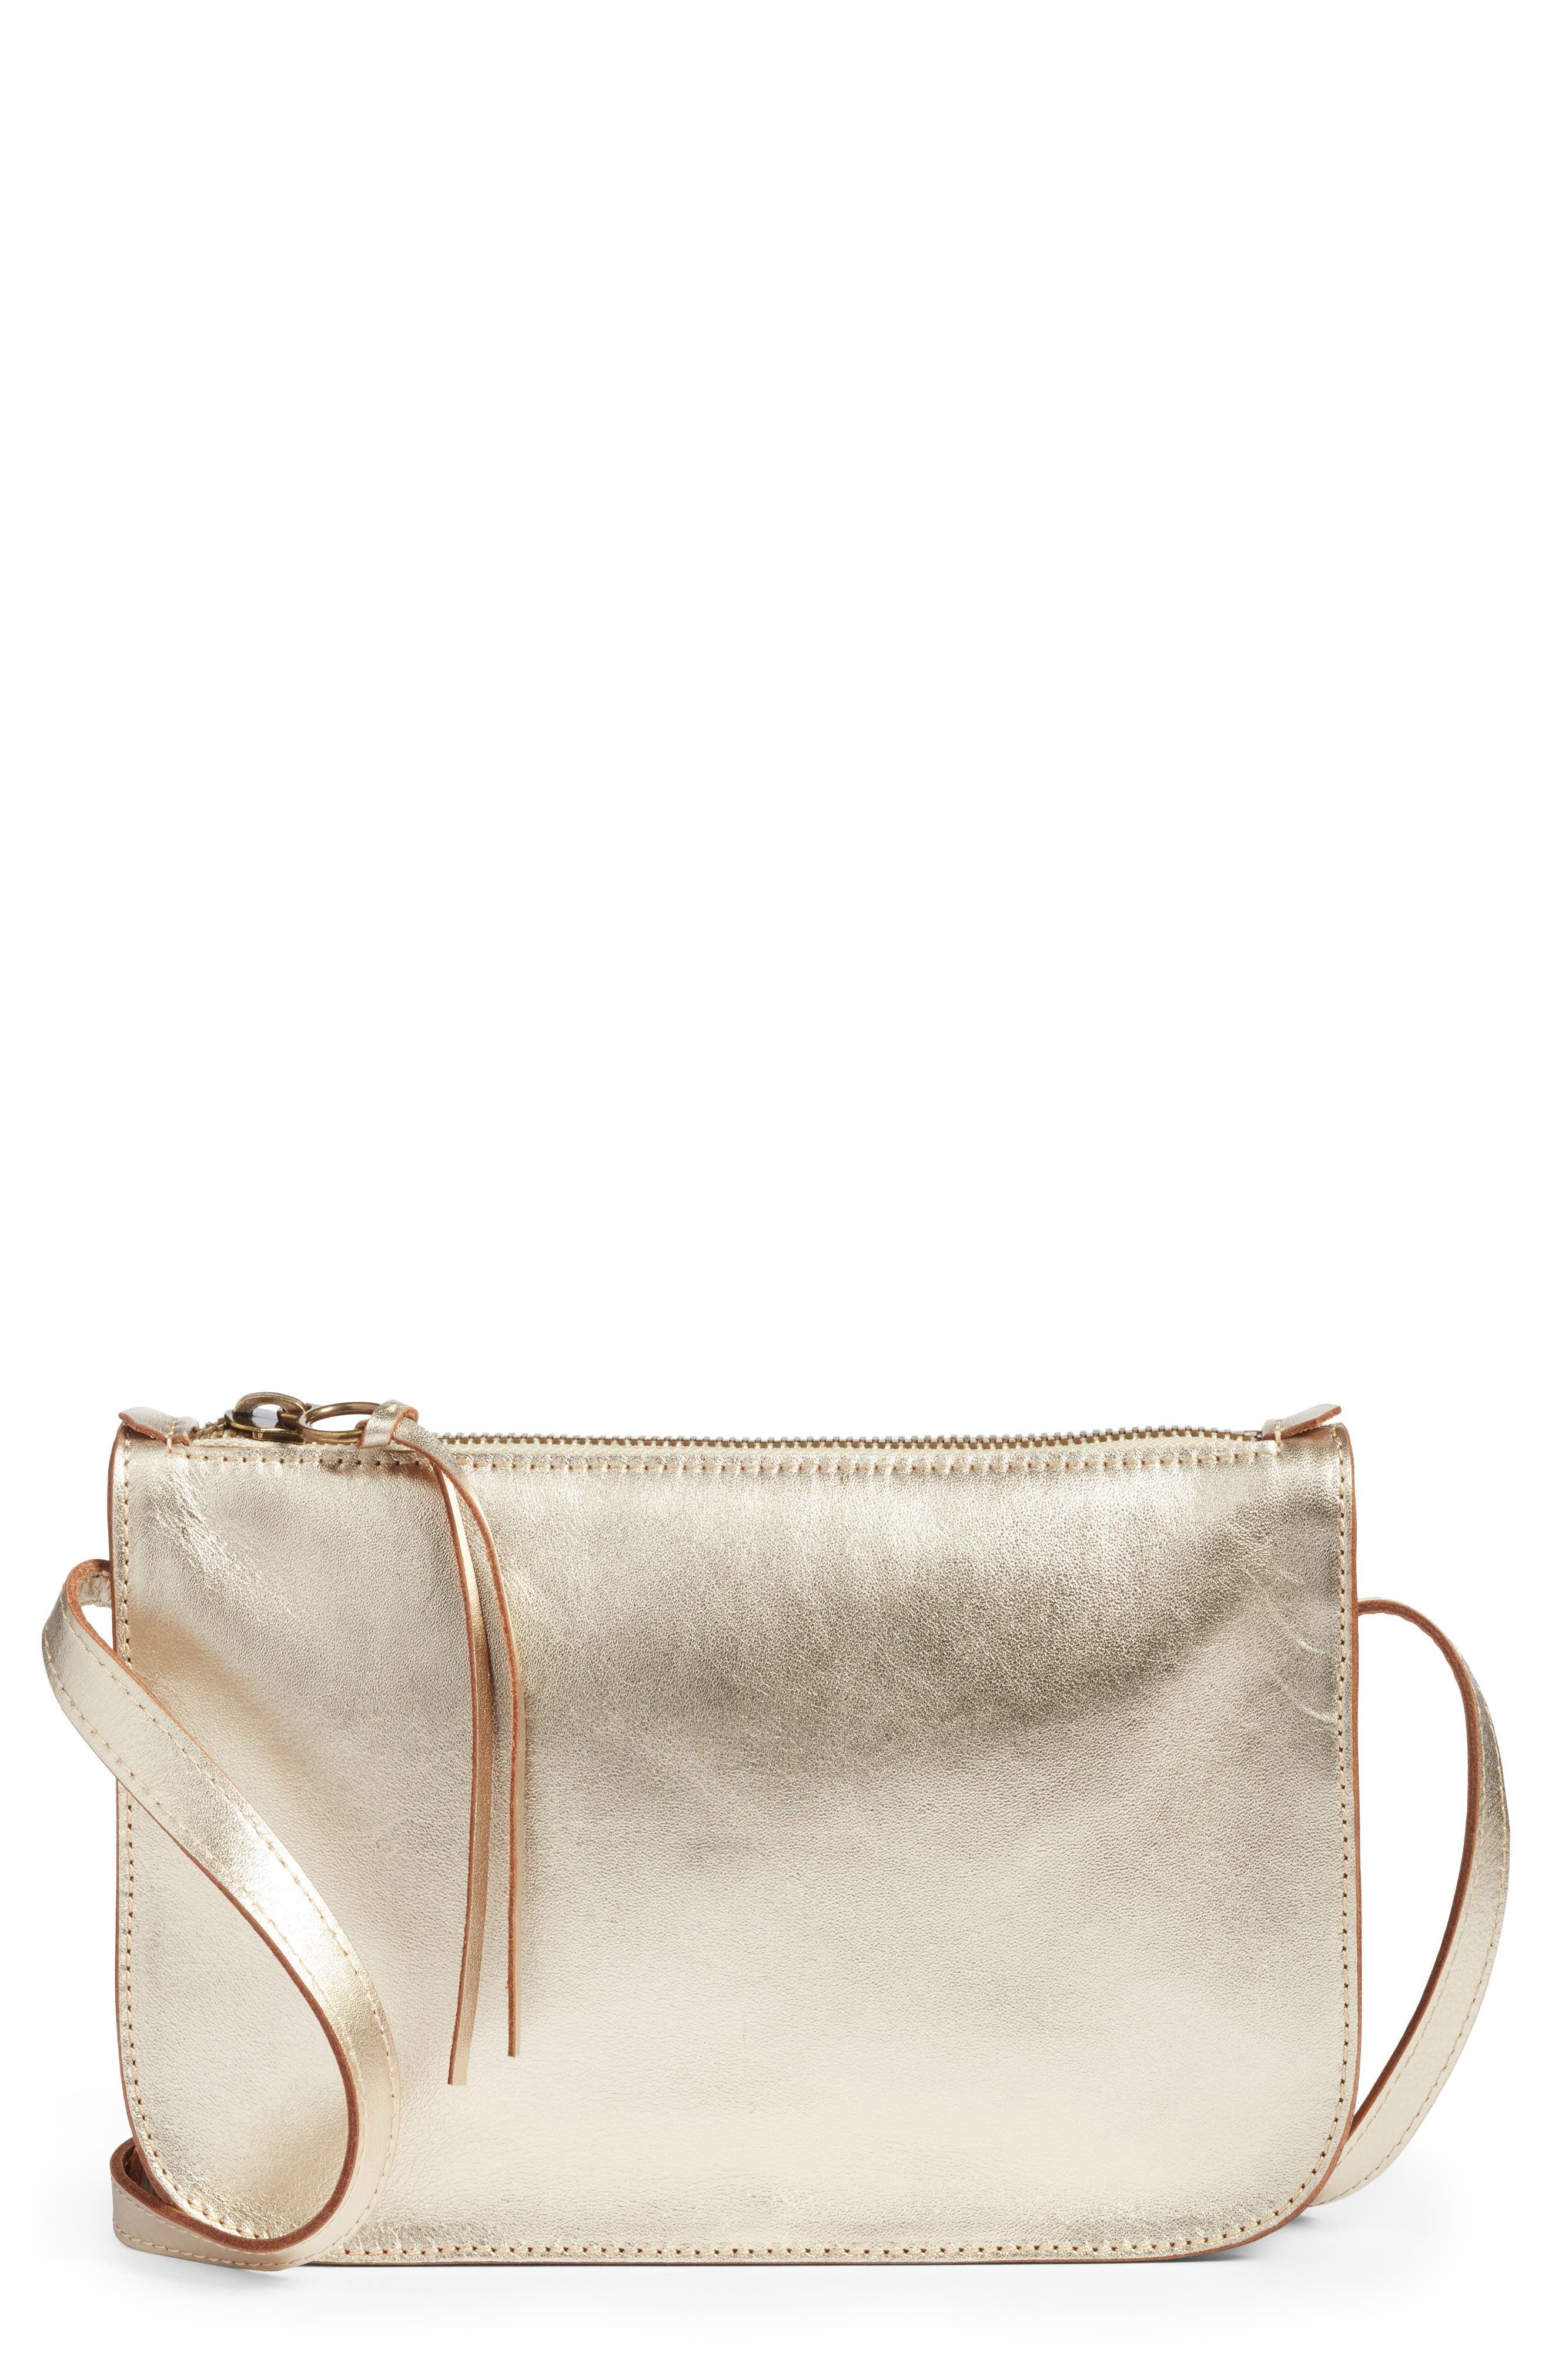 Madewell Leather Crossbody Bag